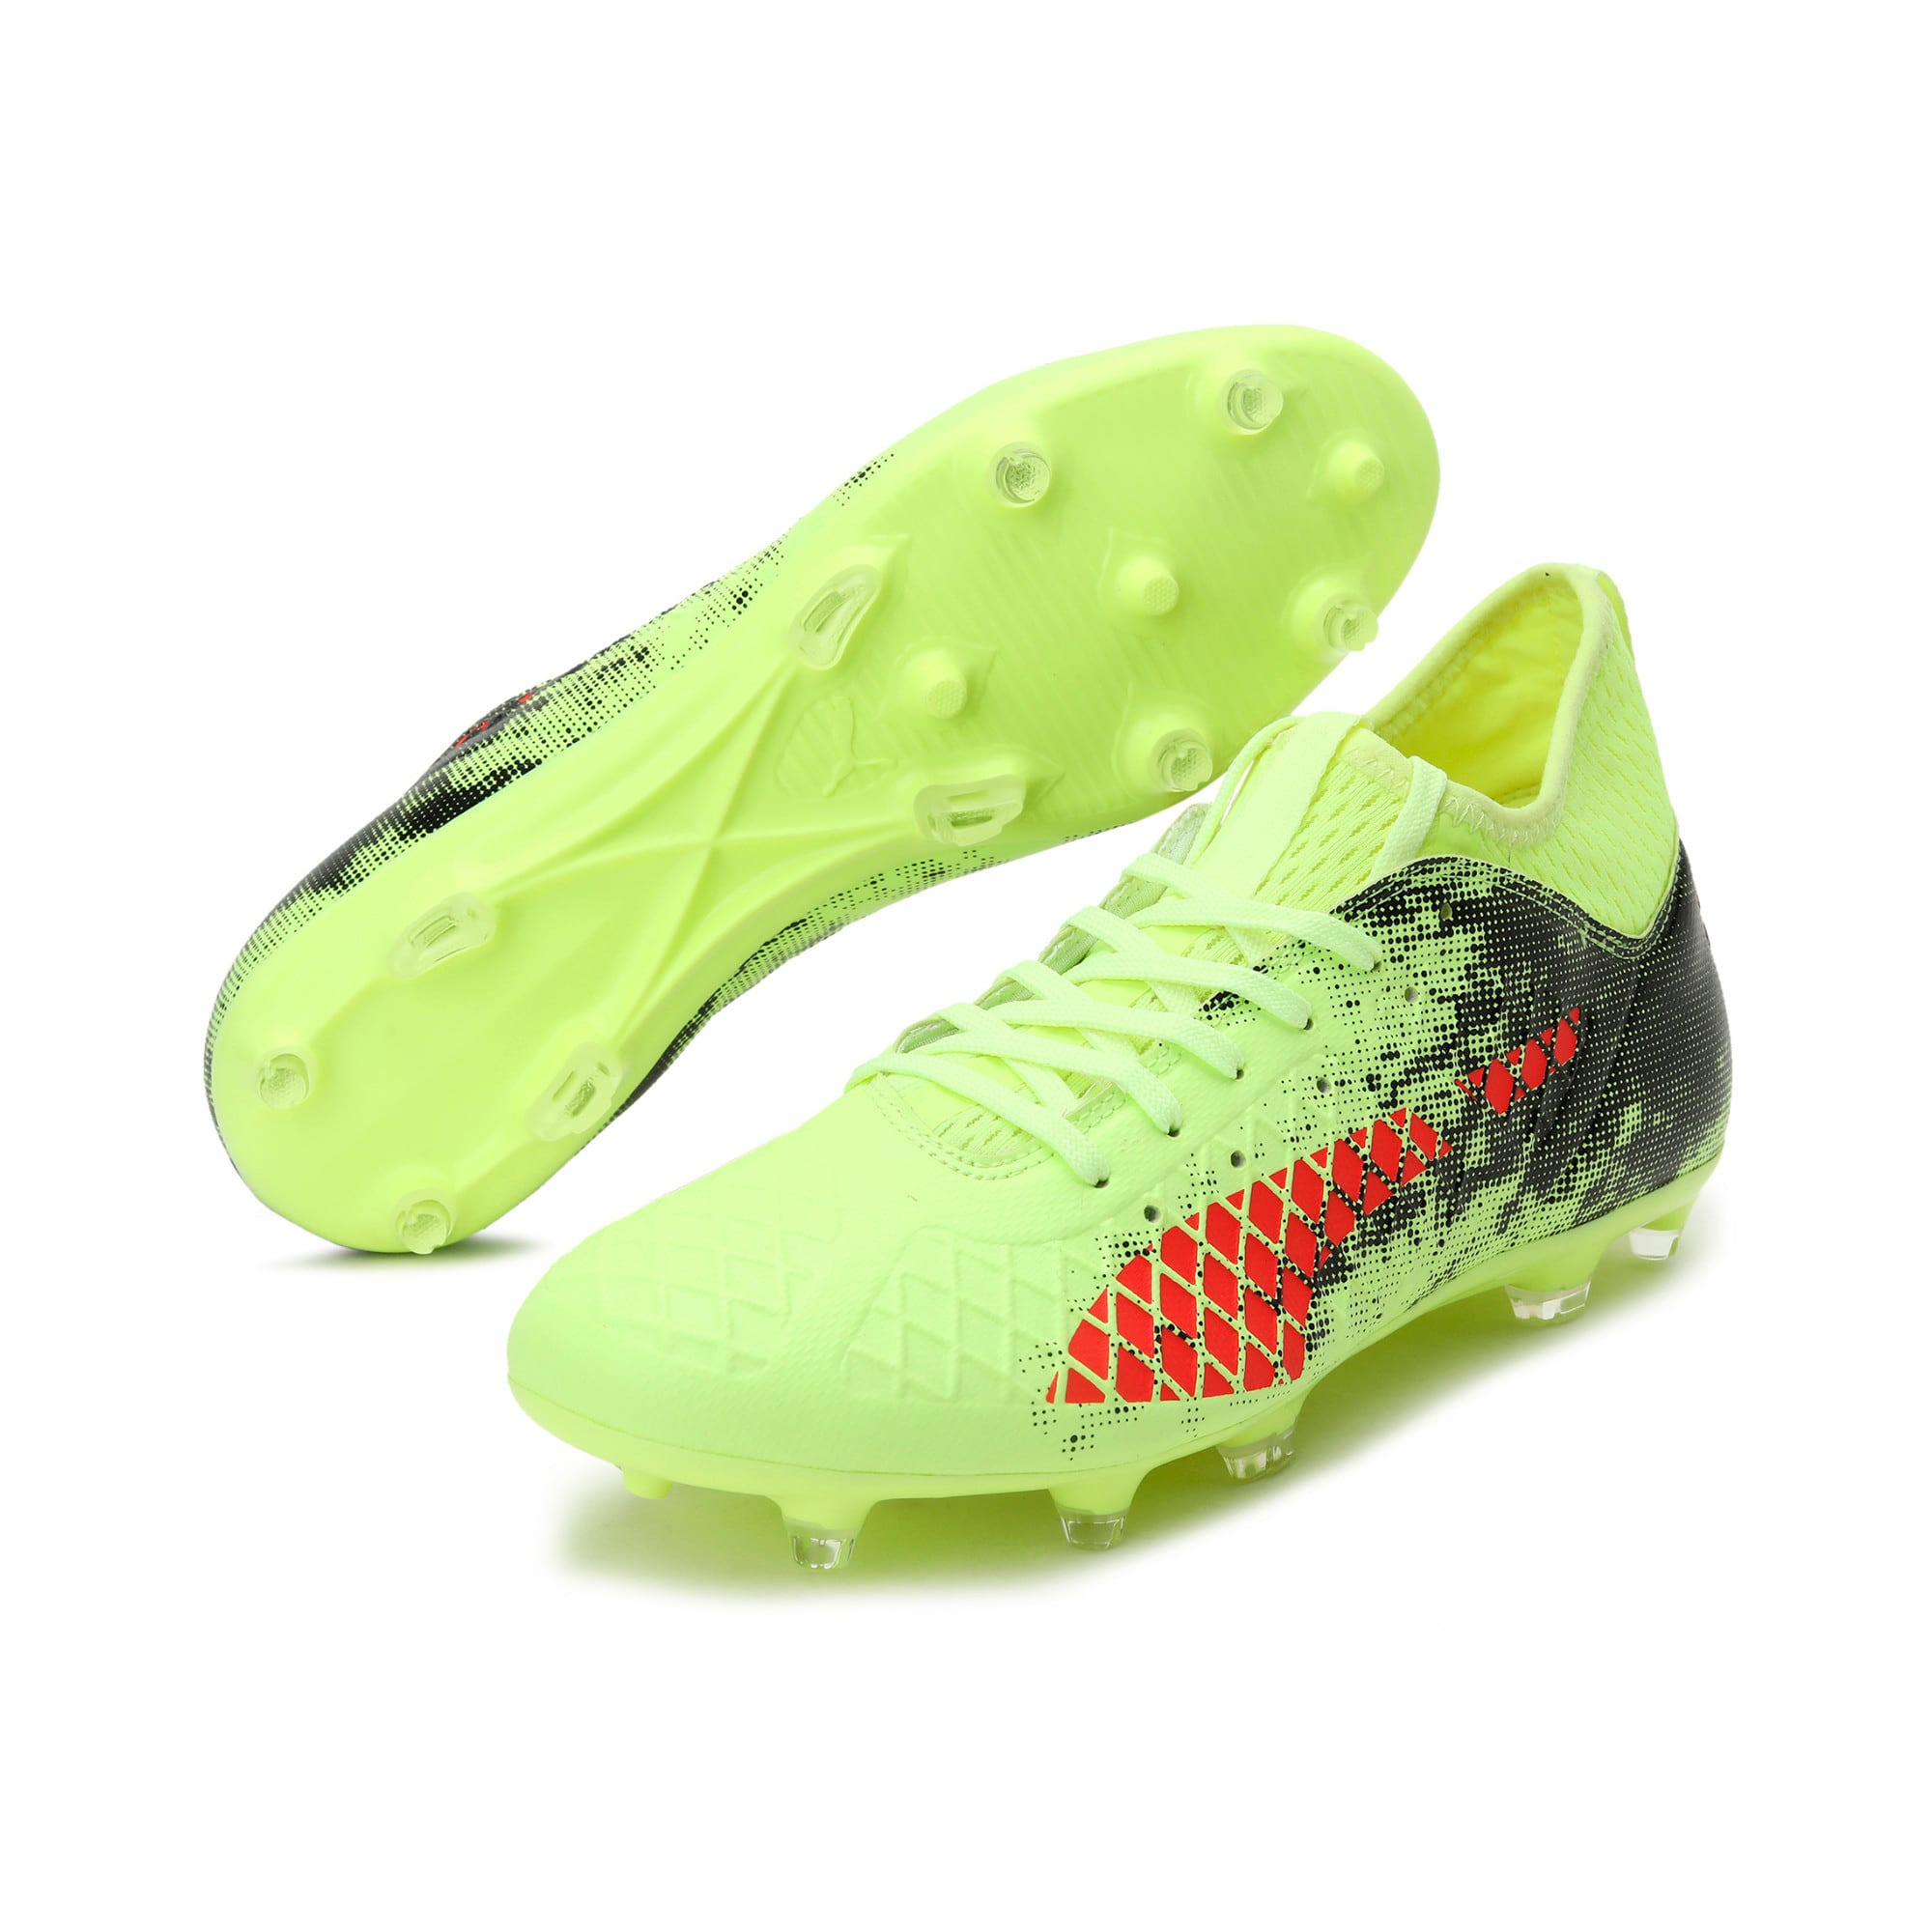 Thumbnail 2 of FUTURE 18.3 FG/AG Men's Football Boots, Yellow-Red-Black, medium-IND